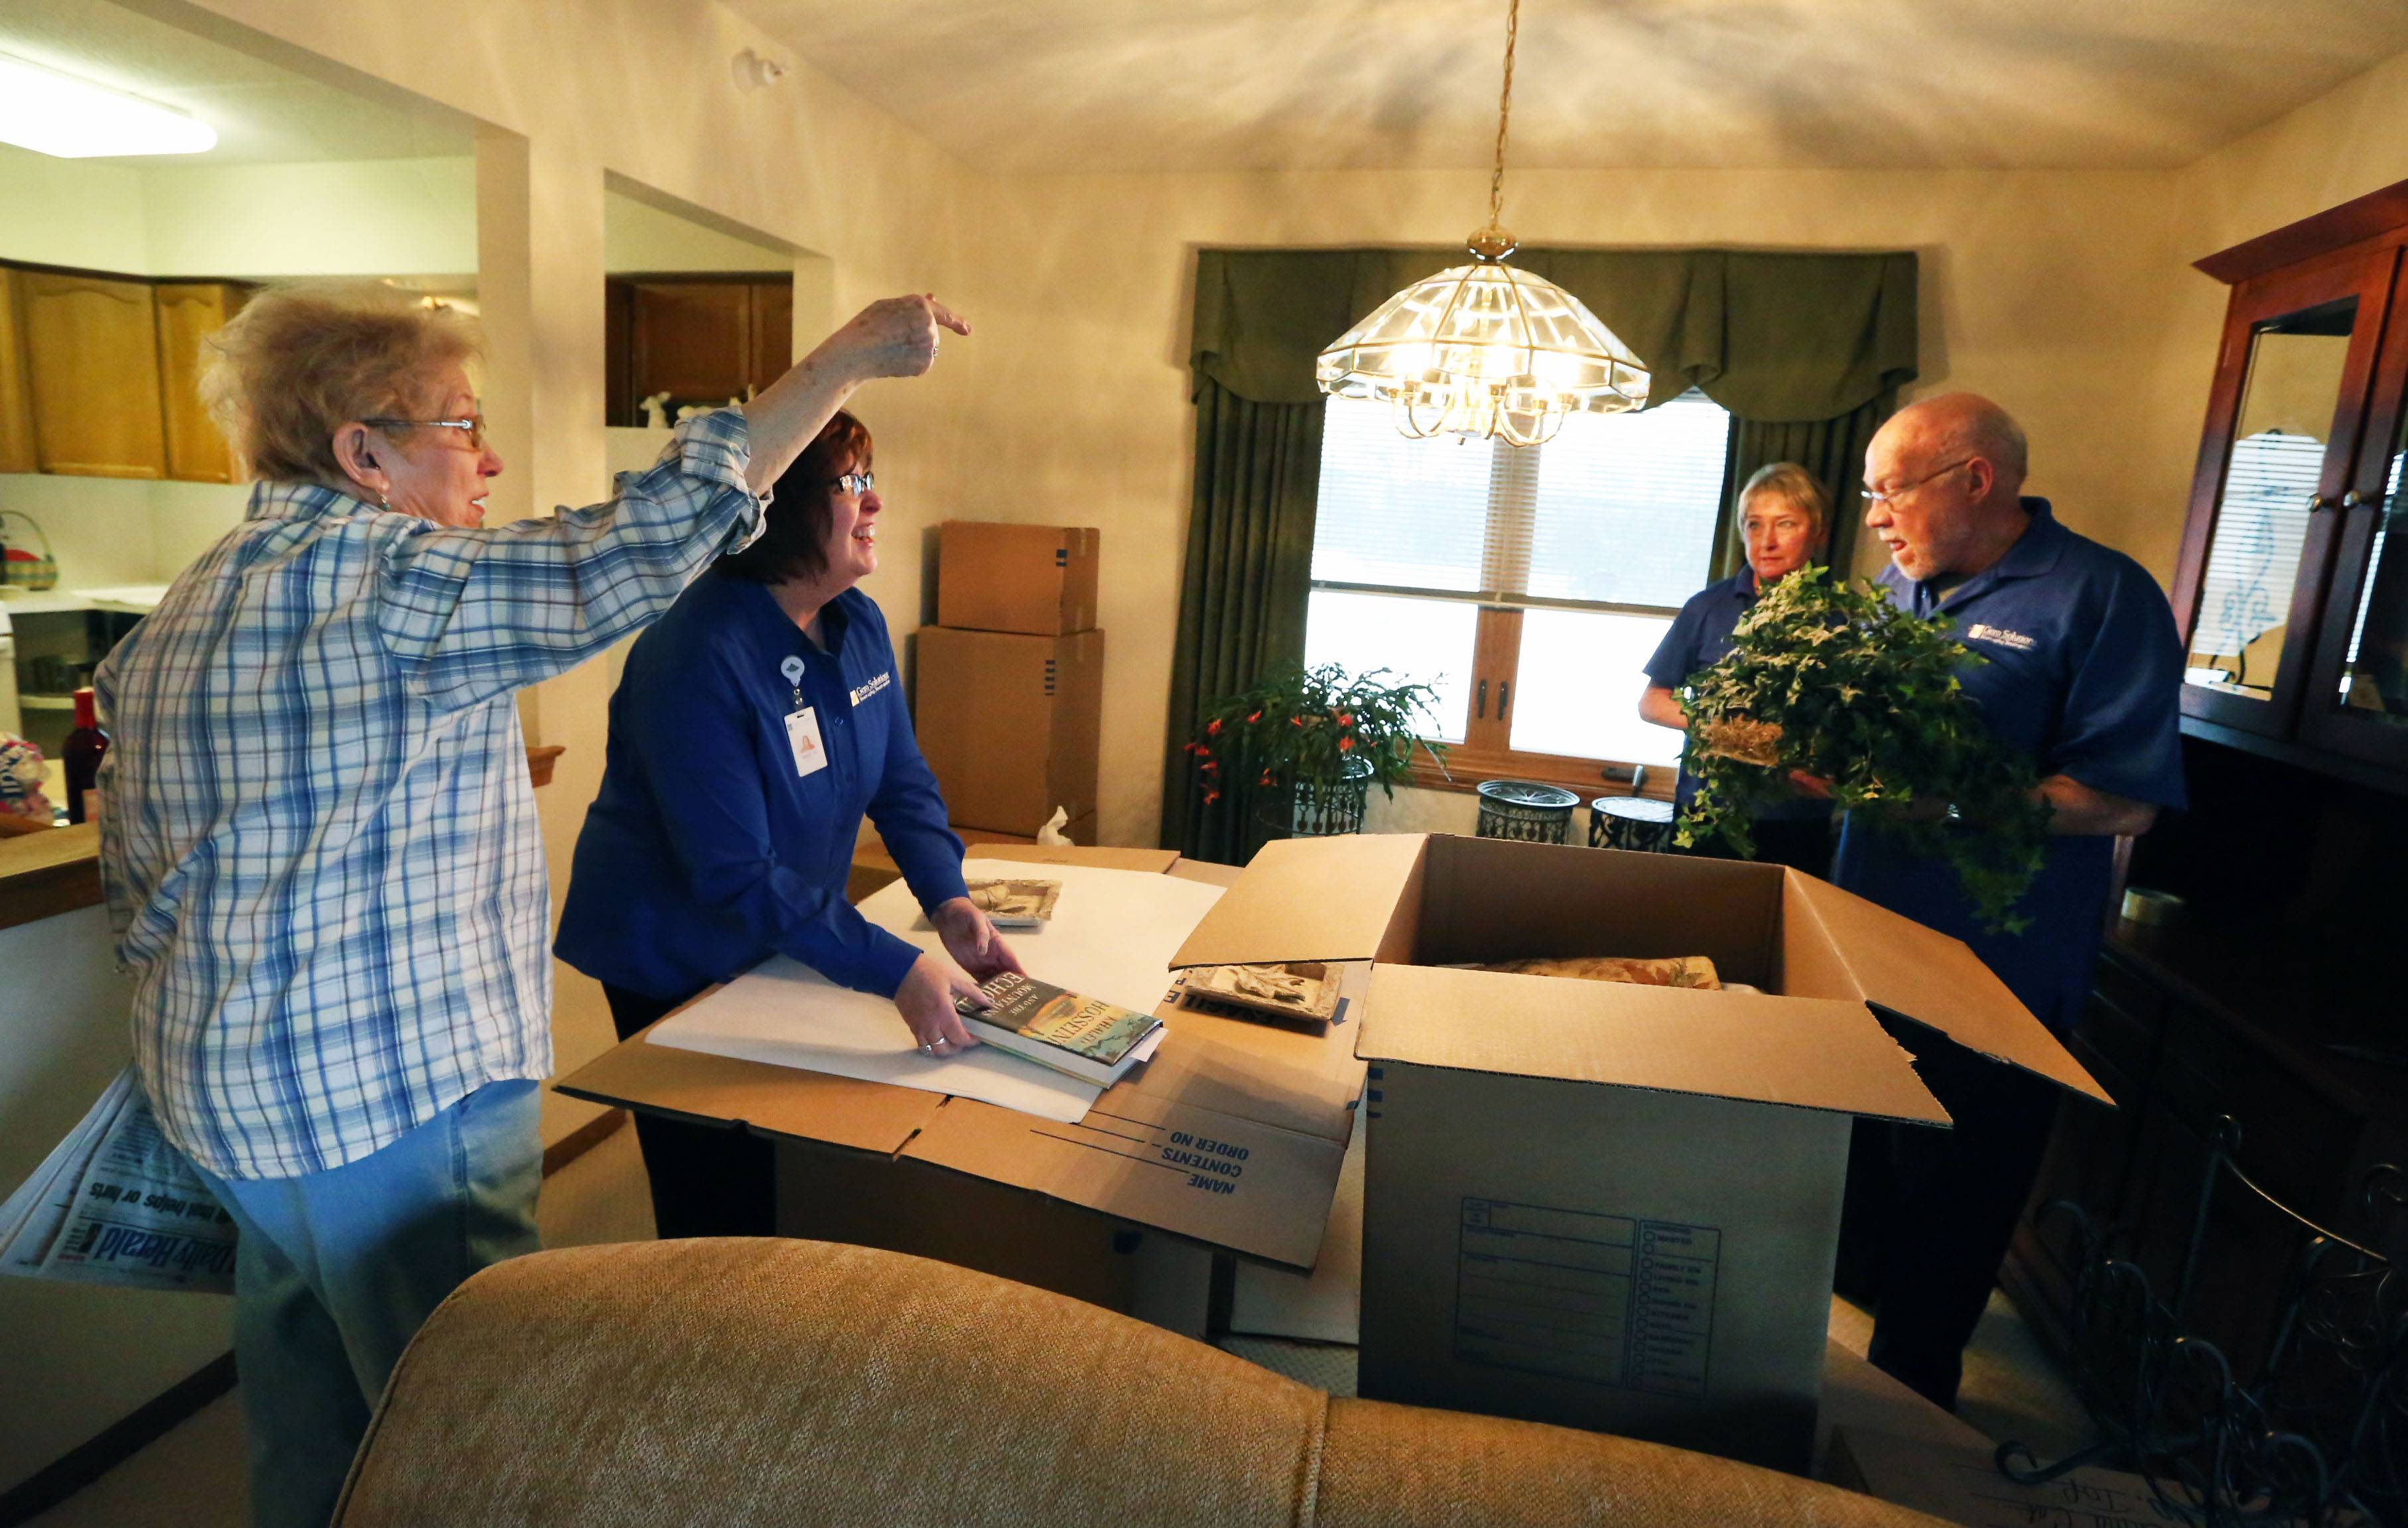 Martha Little of Des Plaines ask a question to senior move manager Sharon Moffat with Gero Solutions, far right corner, while the company packs items in her apartment in Des Plaines for a move to a retirement community.